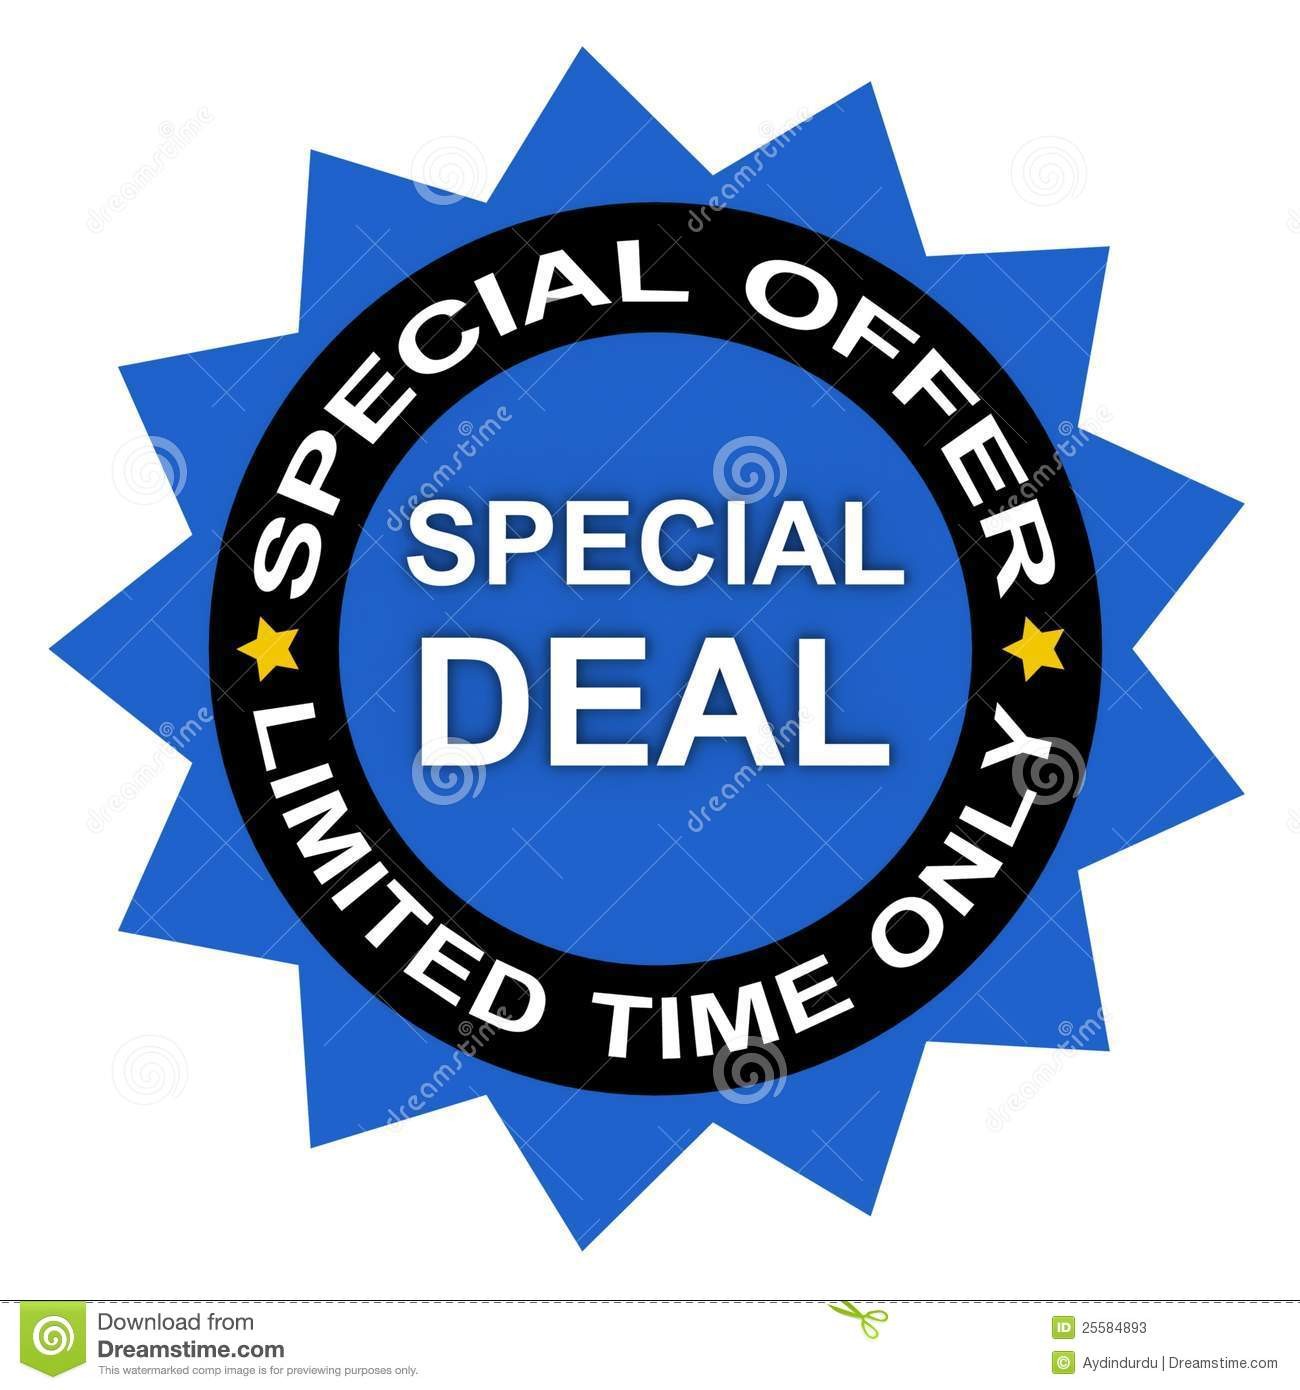 793738518 Special limited time deal stock image. Image of promotion - 25584893